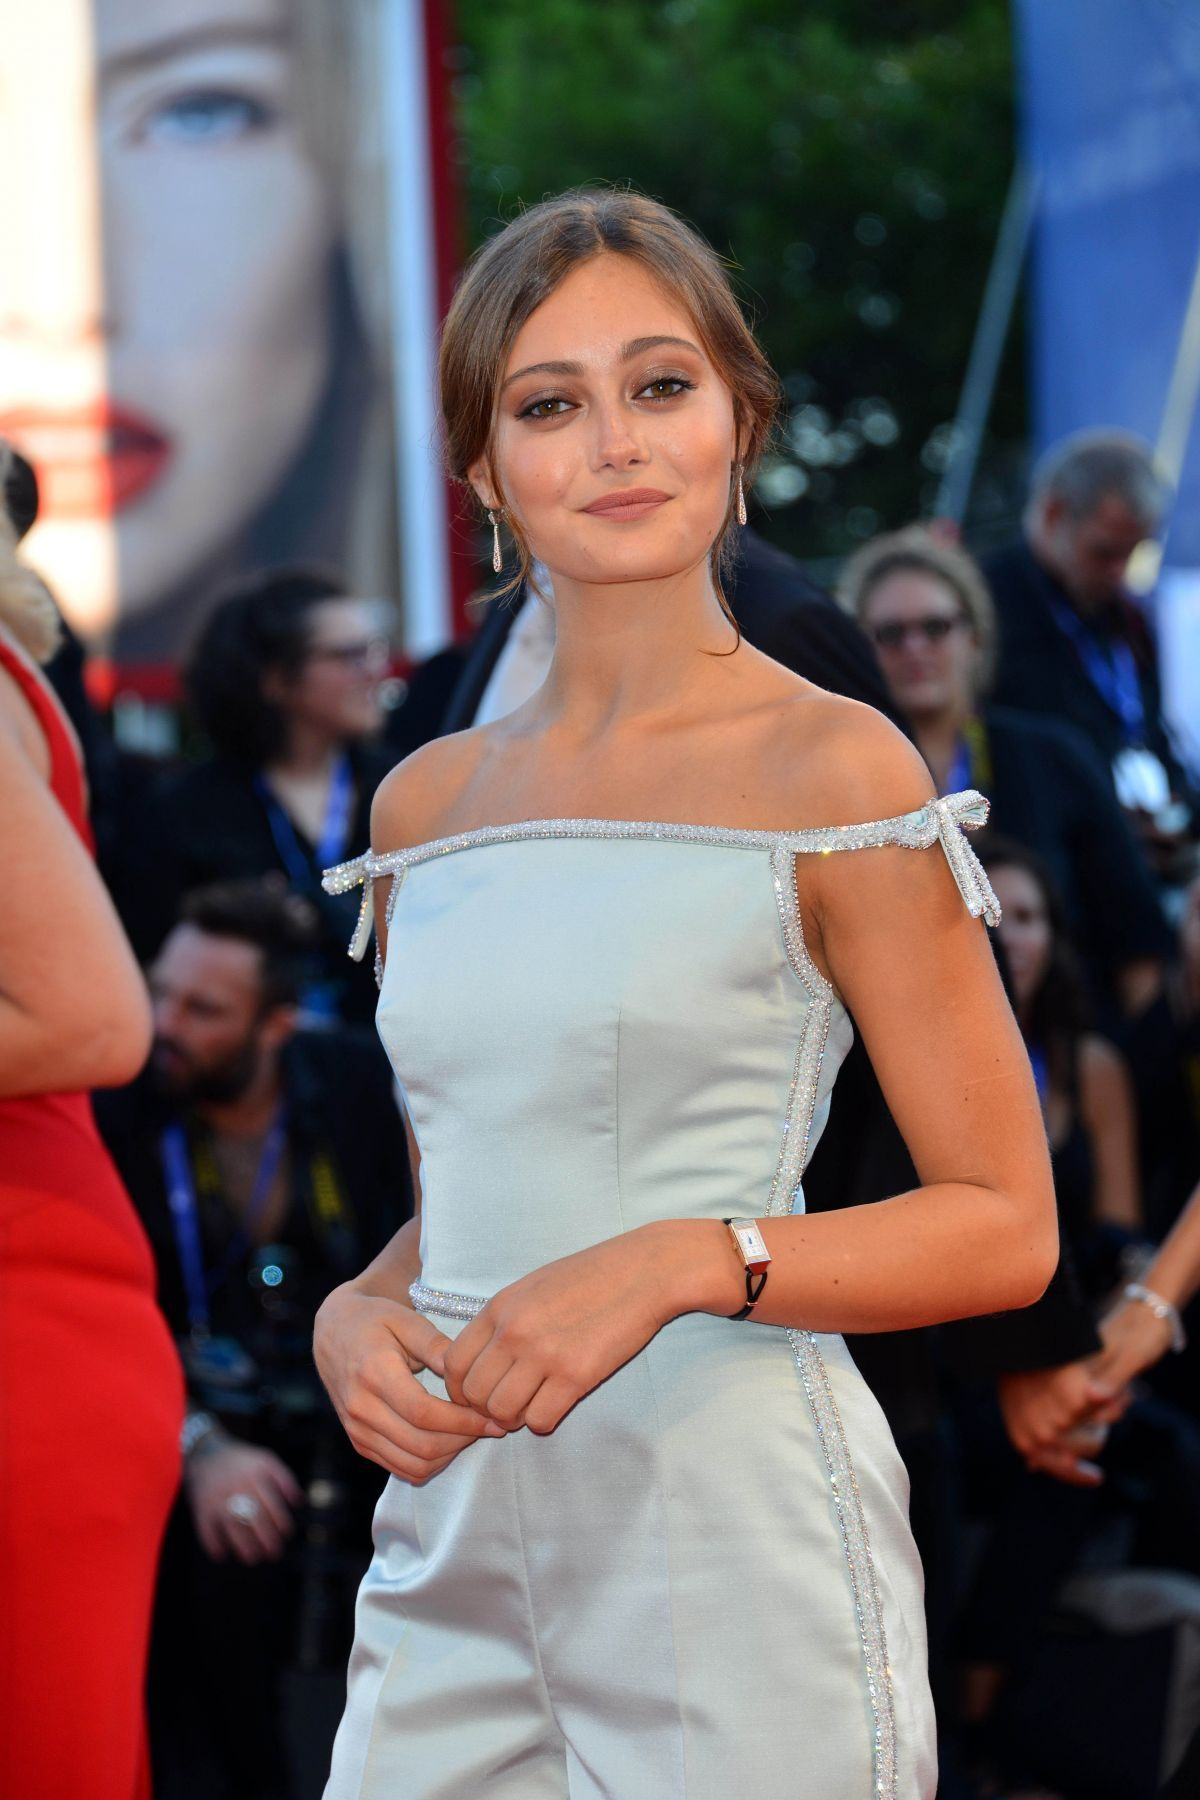 cameltoe Cleavage Ella Purnell naked photo 2017